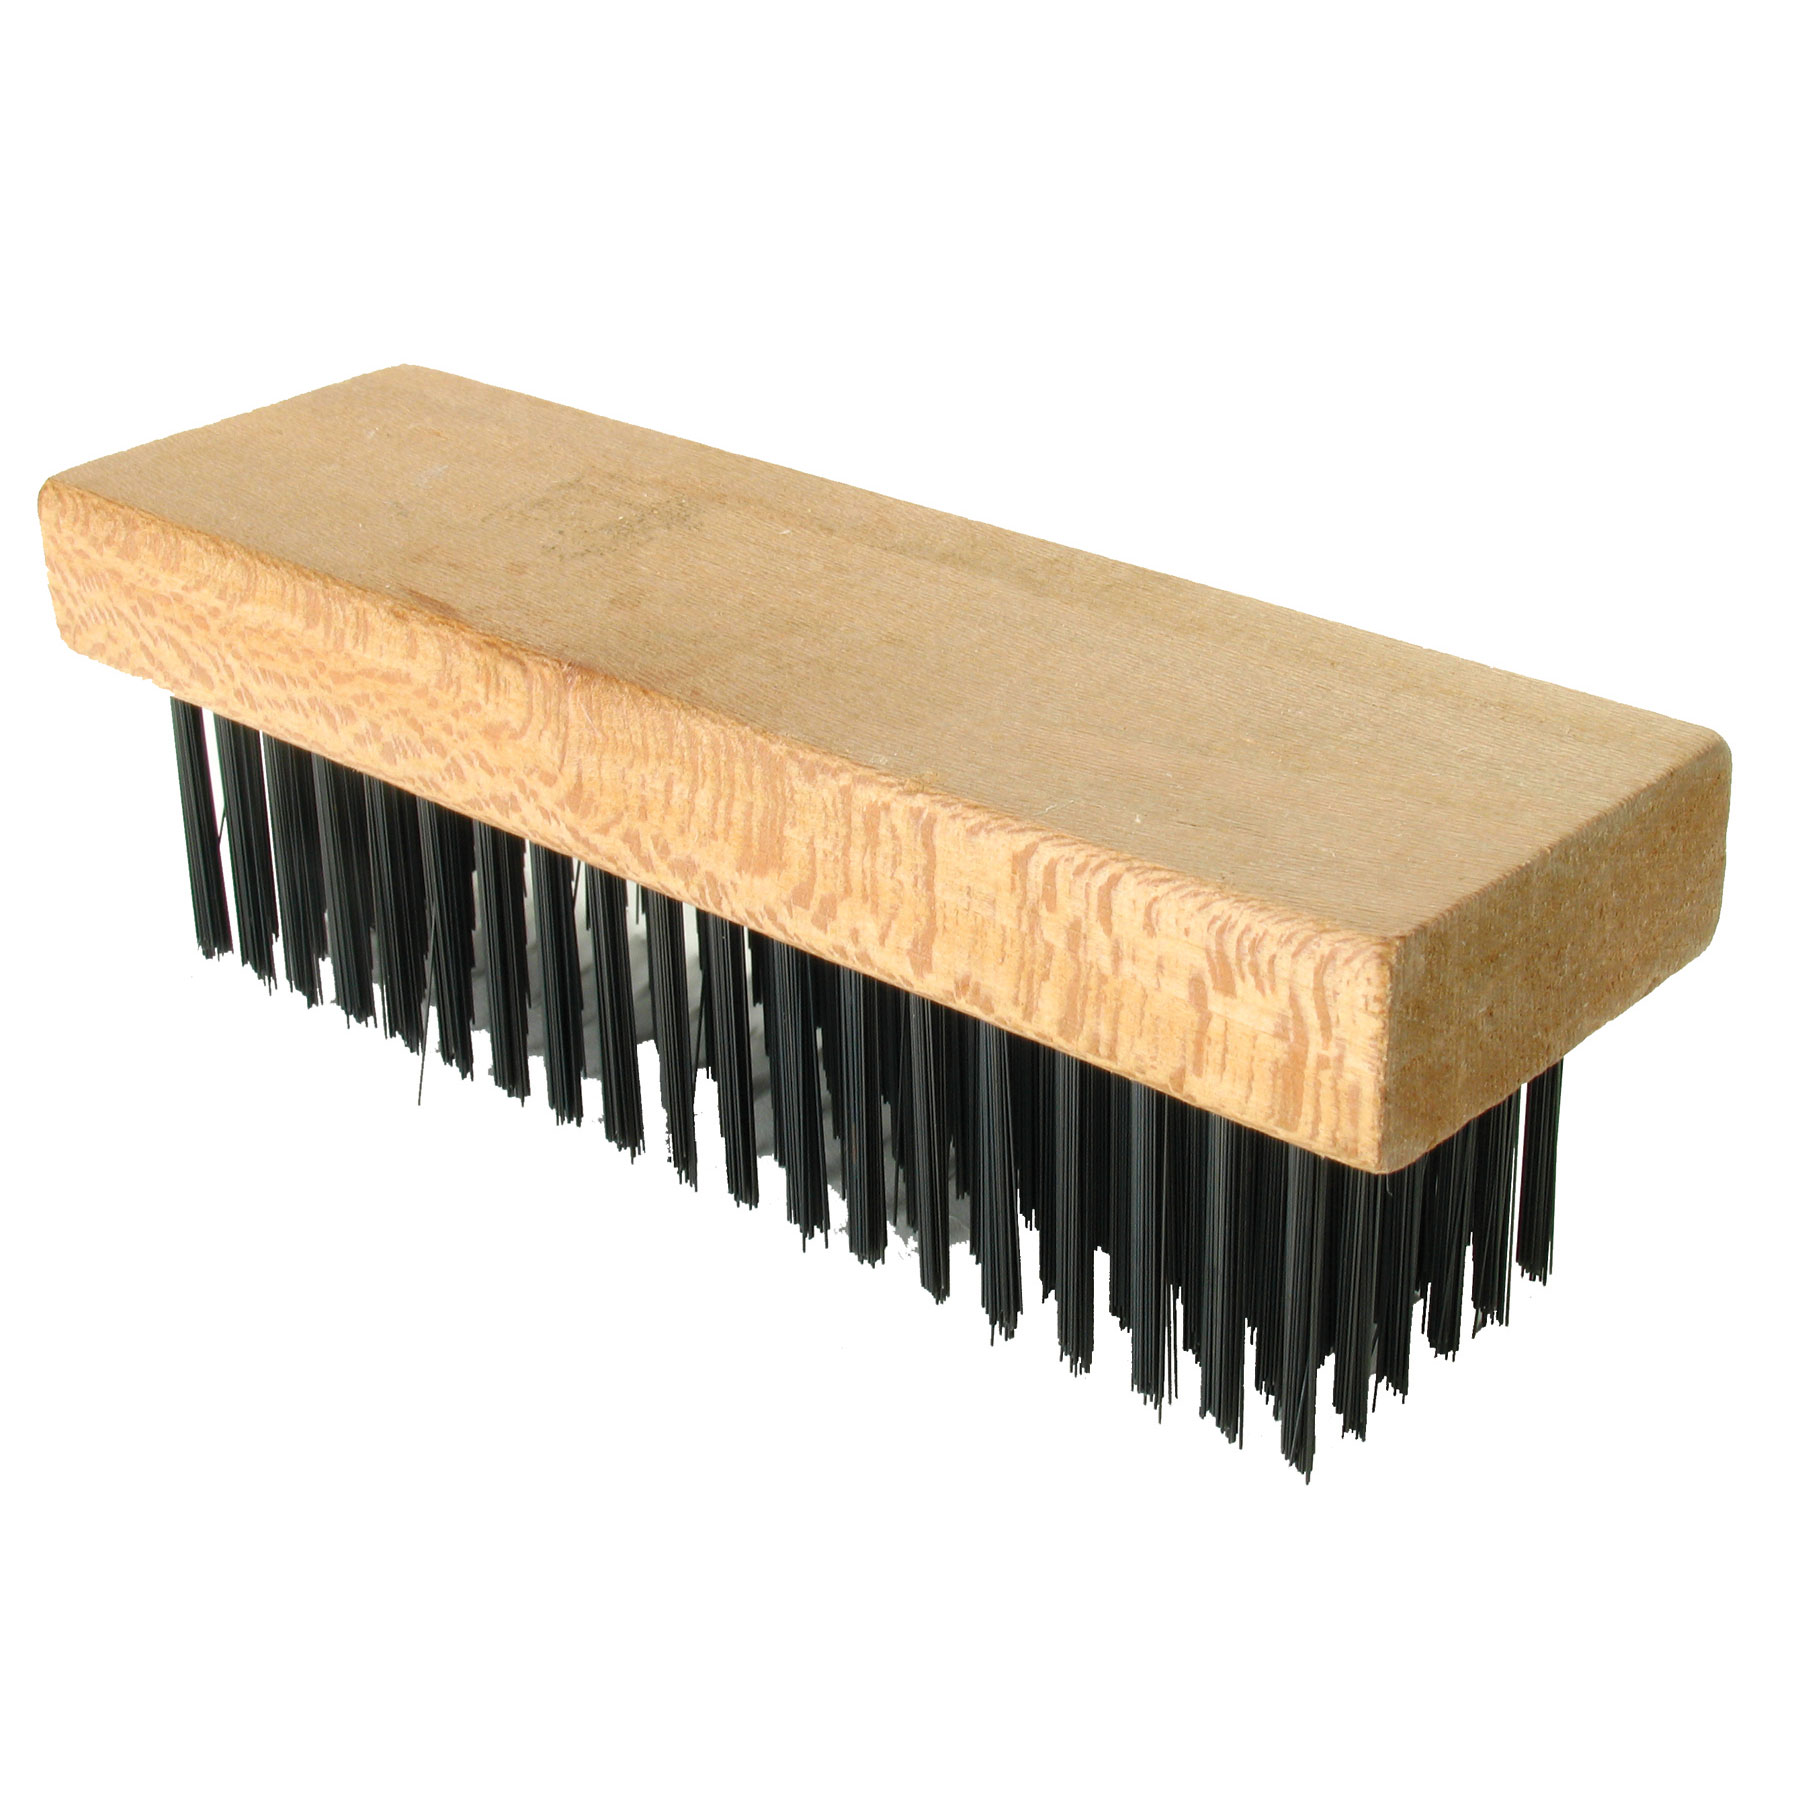 Straight Back Wire Brush, 7-1/8 In x 2-1/4 In